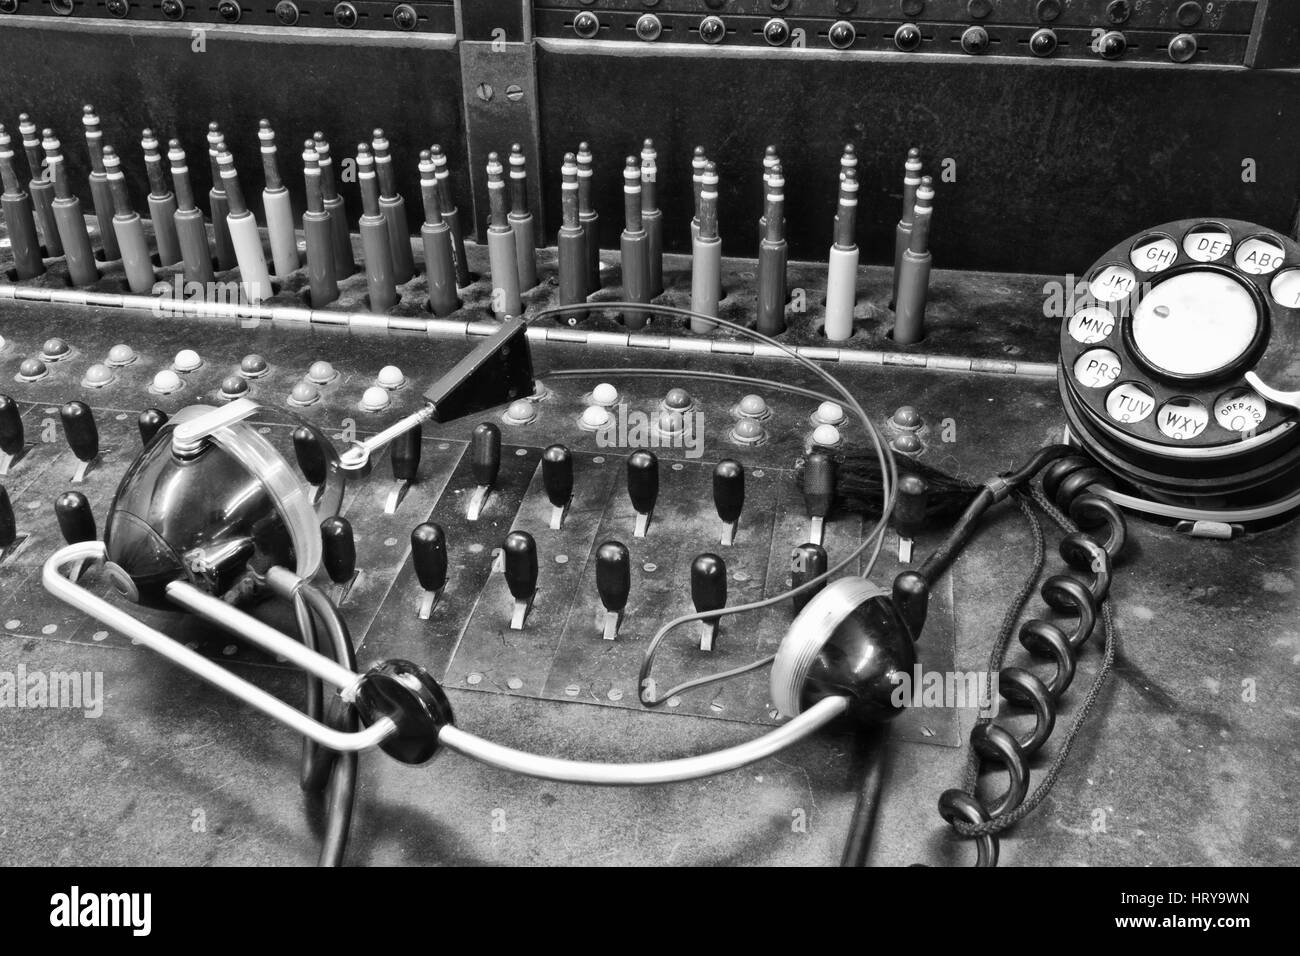 Closeup of a Vintage Bell System Telephone Switchboard with Plugs IV - Stock Image